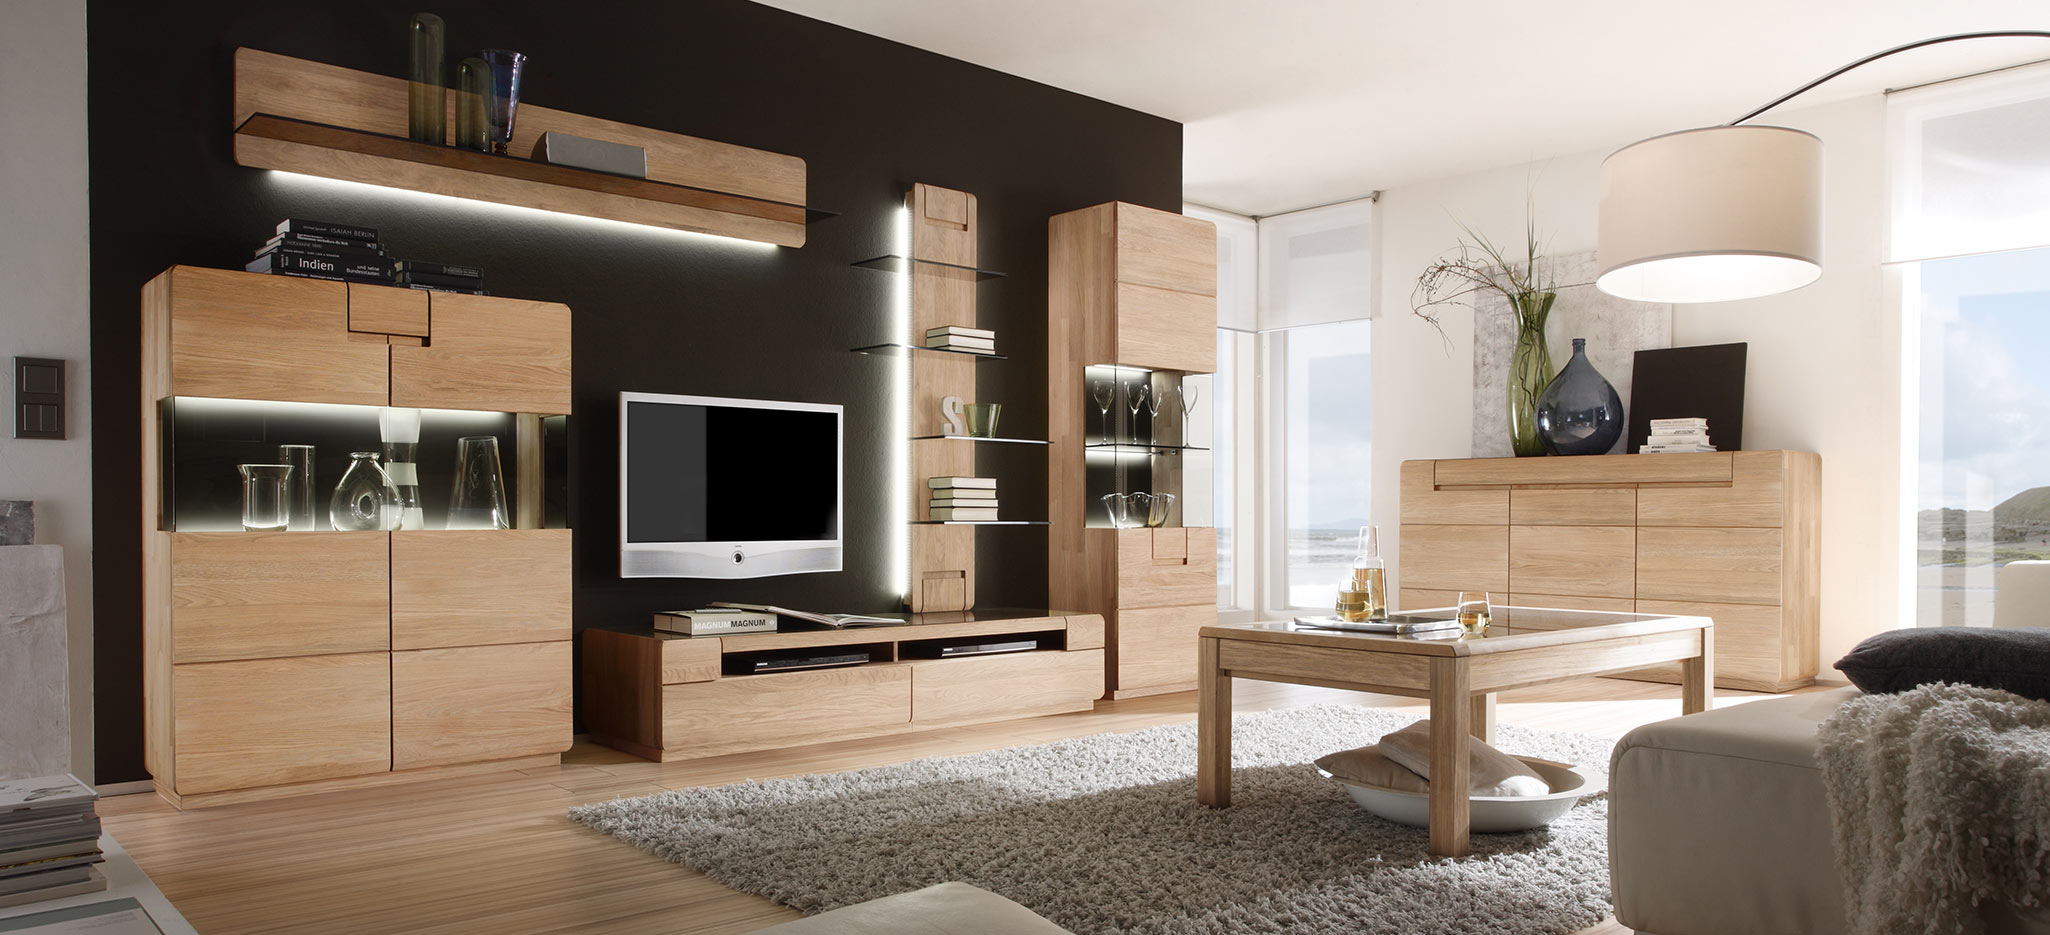 delgado massivholzm bel kollektion decker. Black Bedroom Furniture Sets. Home Design Ideas